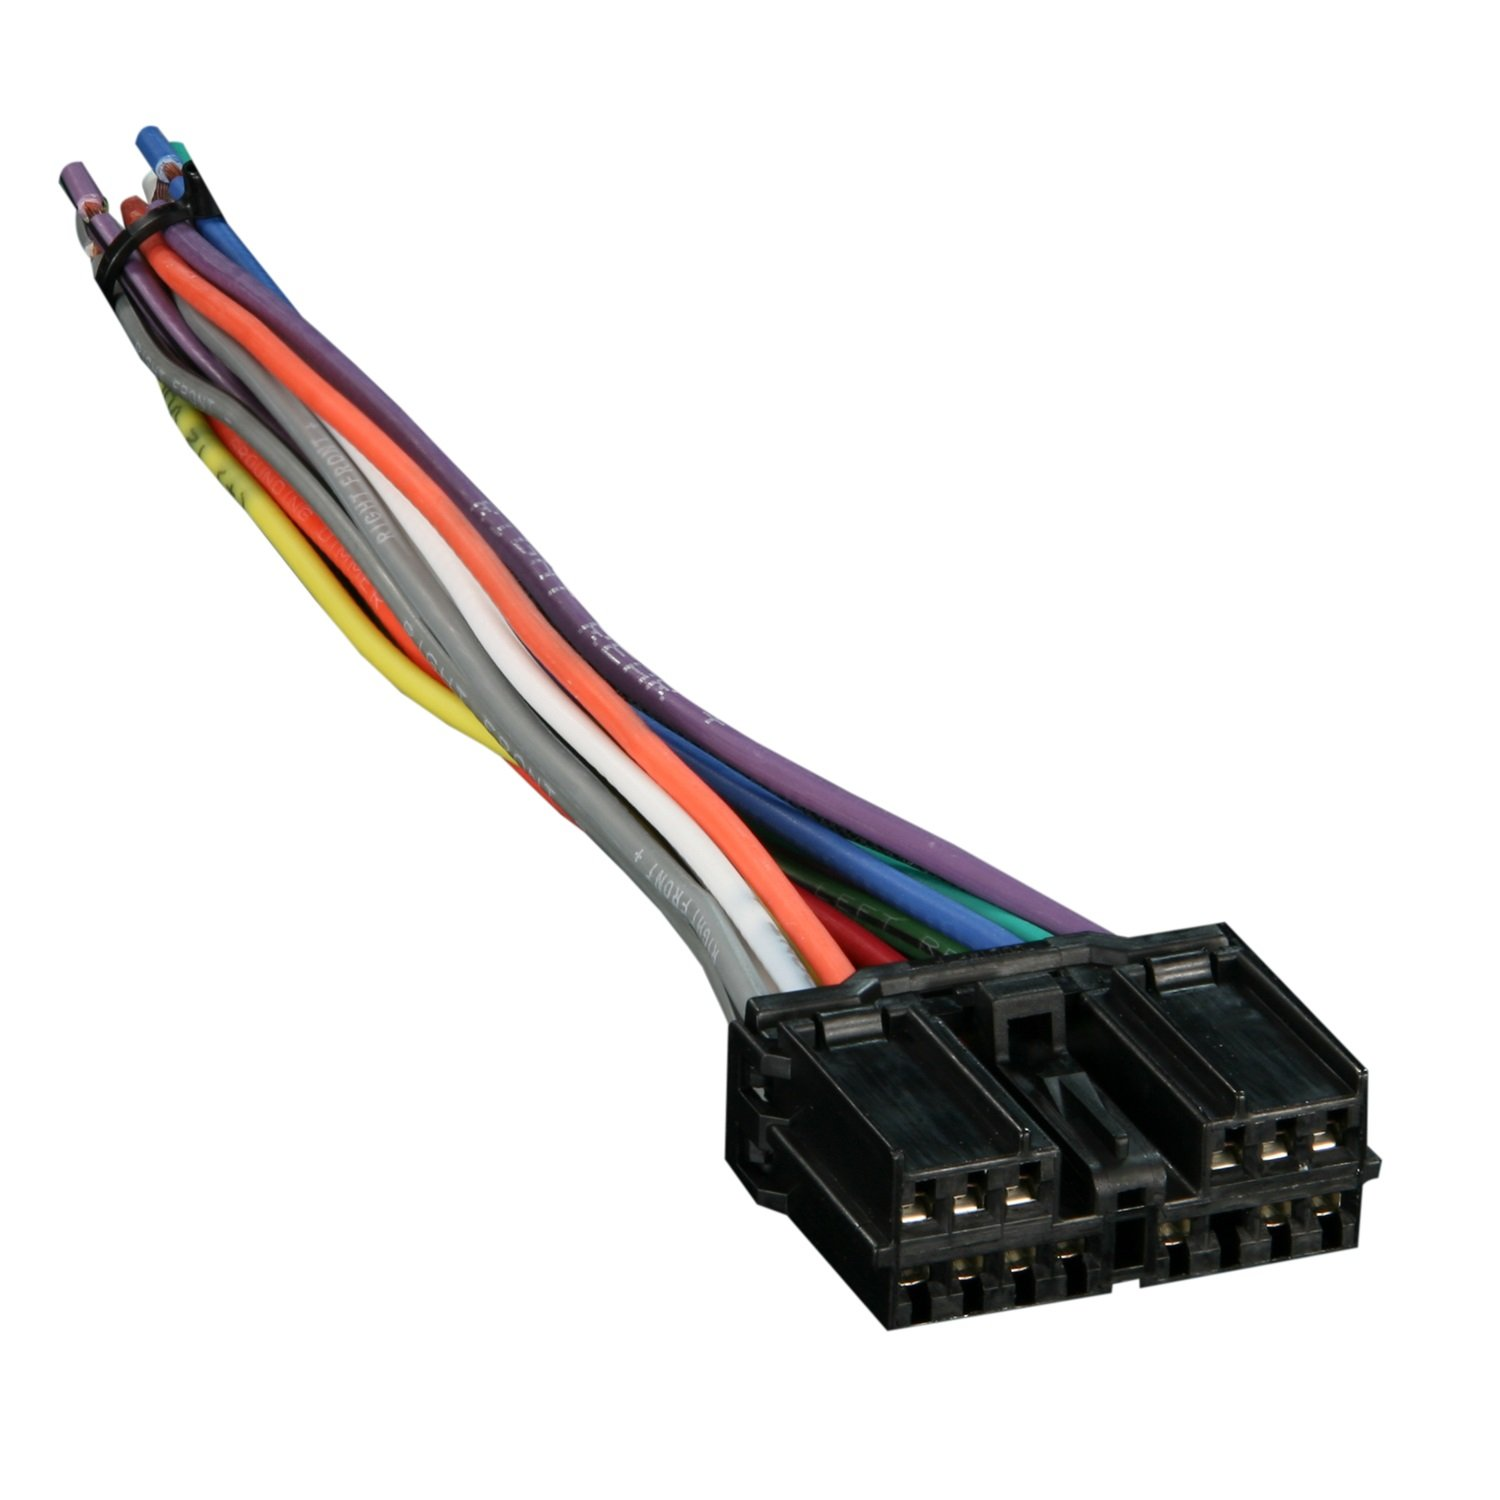 61CkQ4qdSJL._SL1500_ amazon com metra reverse wiring harness 71 7001 for select 1995 metra pioneer wiring harness at couponss.co